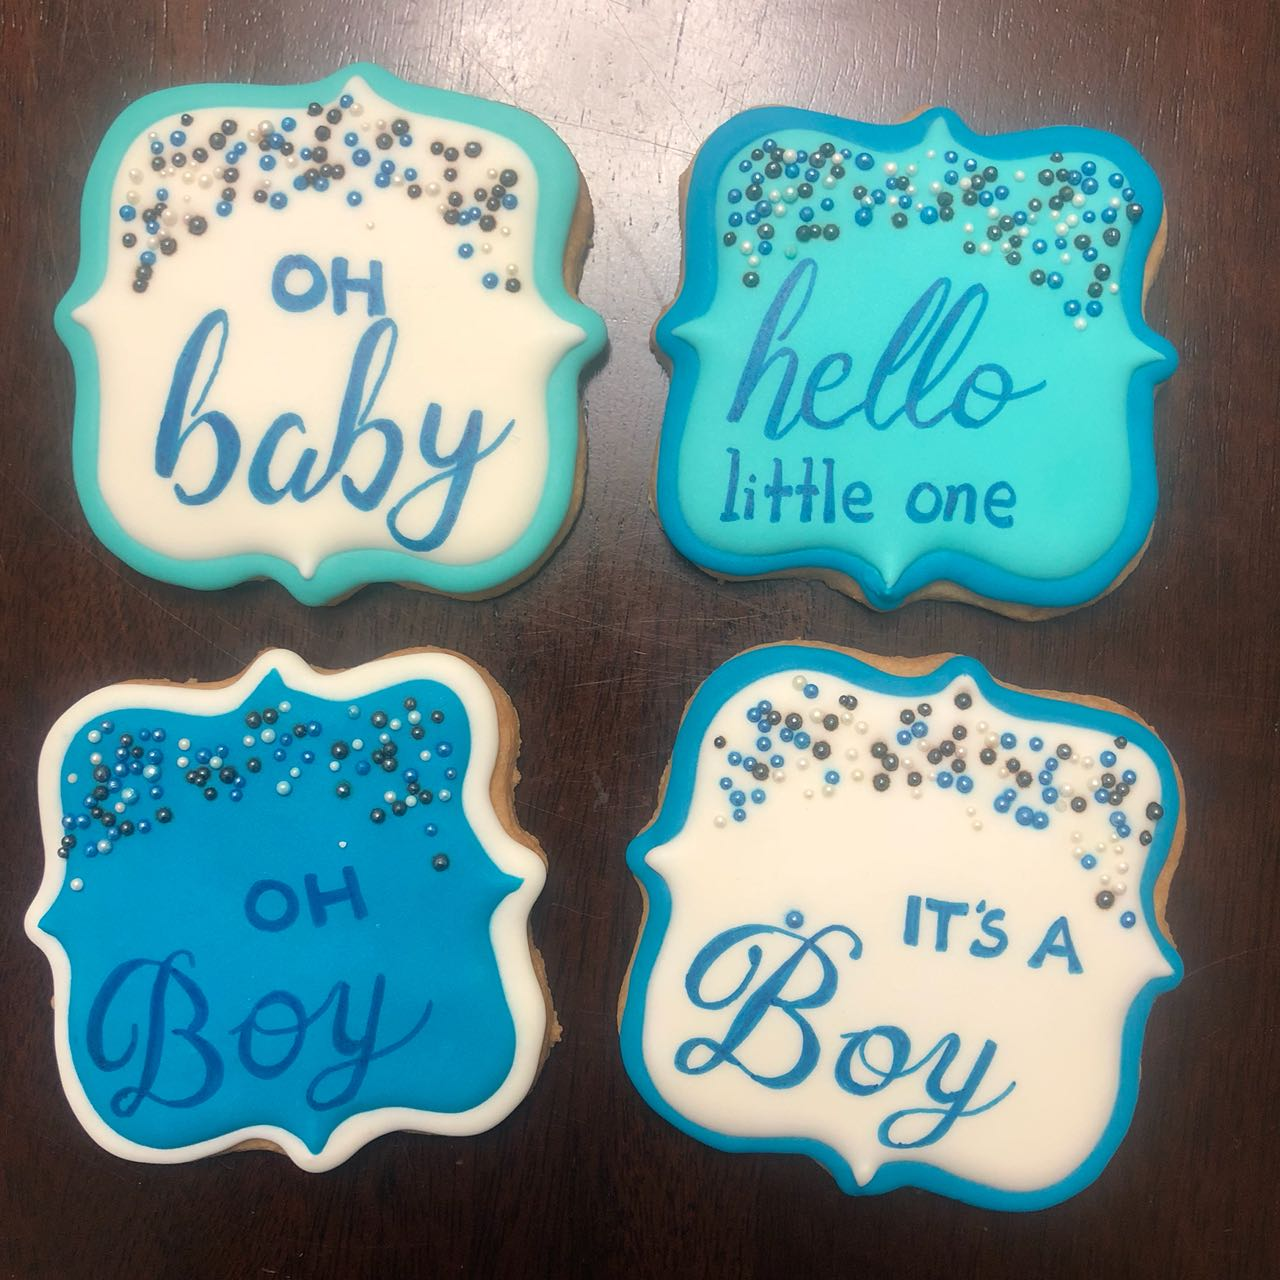 cookies, decorated cookies. it's a boy. baby shower. baby boy. baby. celebrate. royal icing. blue white. sprinkles